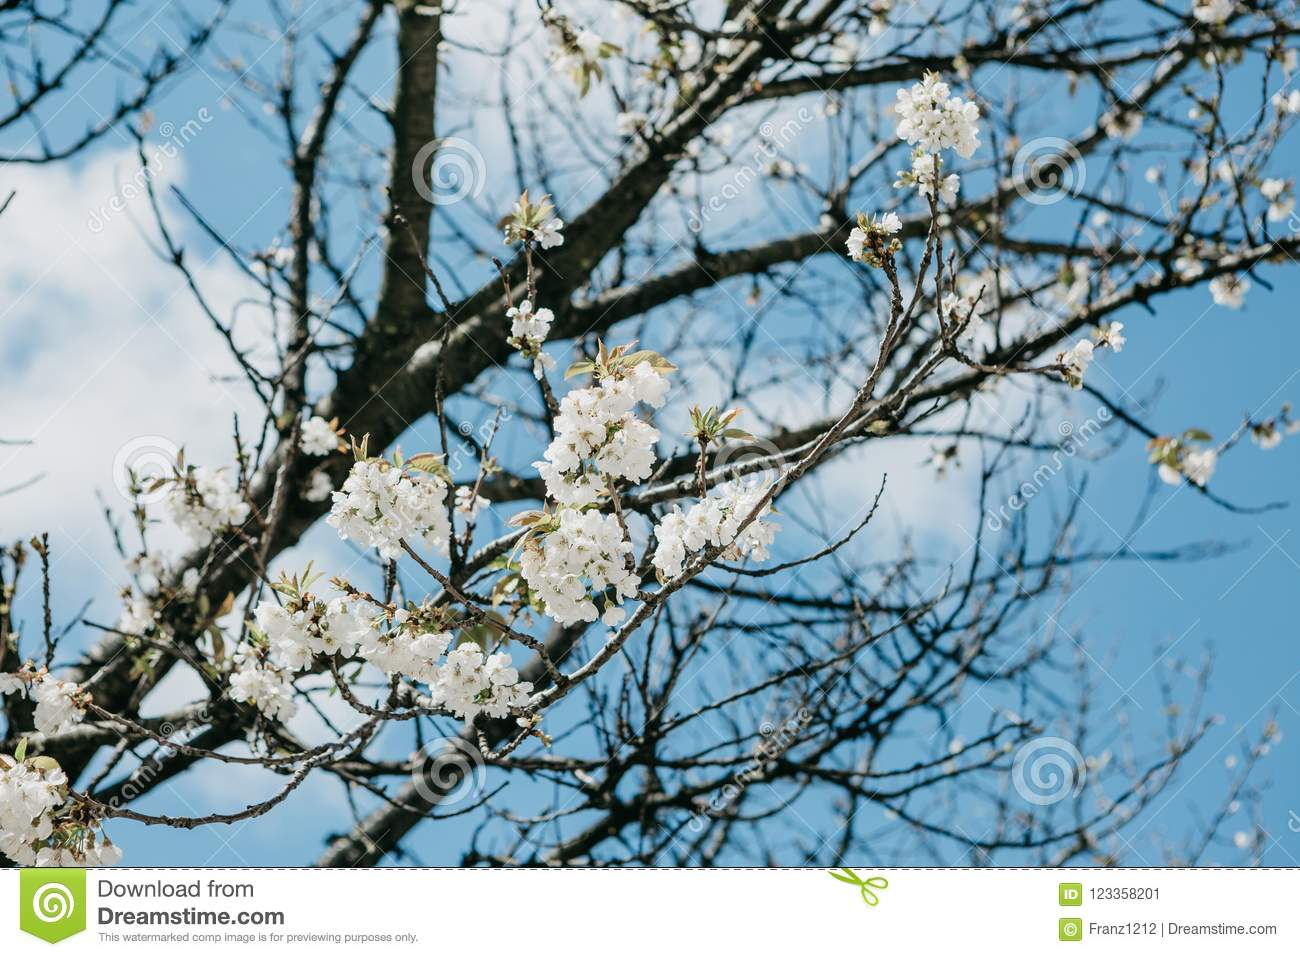 Branch Of A Tree With White Flowers Against The Blue Sky Stock